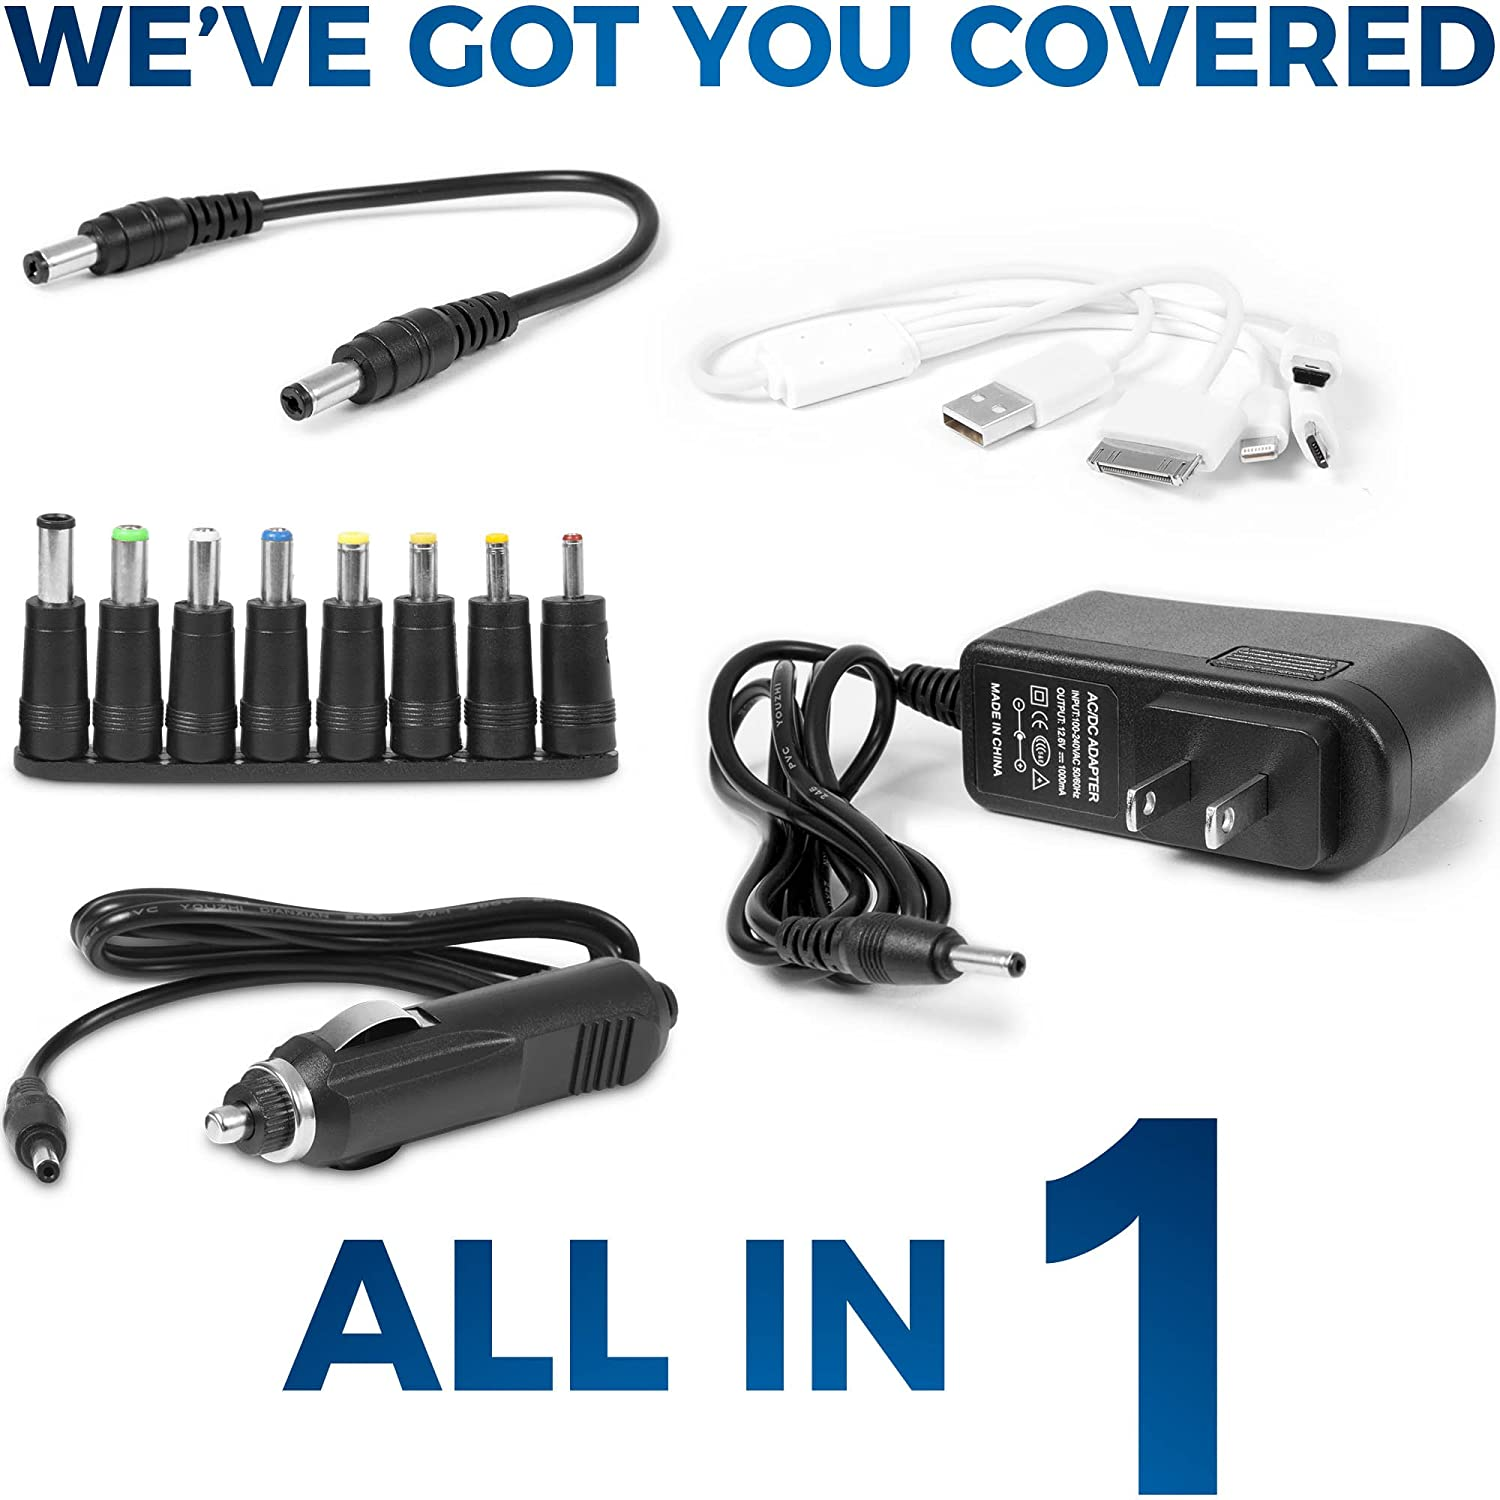 Battery Jumper Charger Pack with Cables Jump Start any Car or Automotive Vehicles.Portable Starter 12V 18000 mAh Power Box 800 A Peak for Auto and Motorcycle Jumpstart.Batteries Emergency Booster Kit